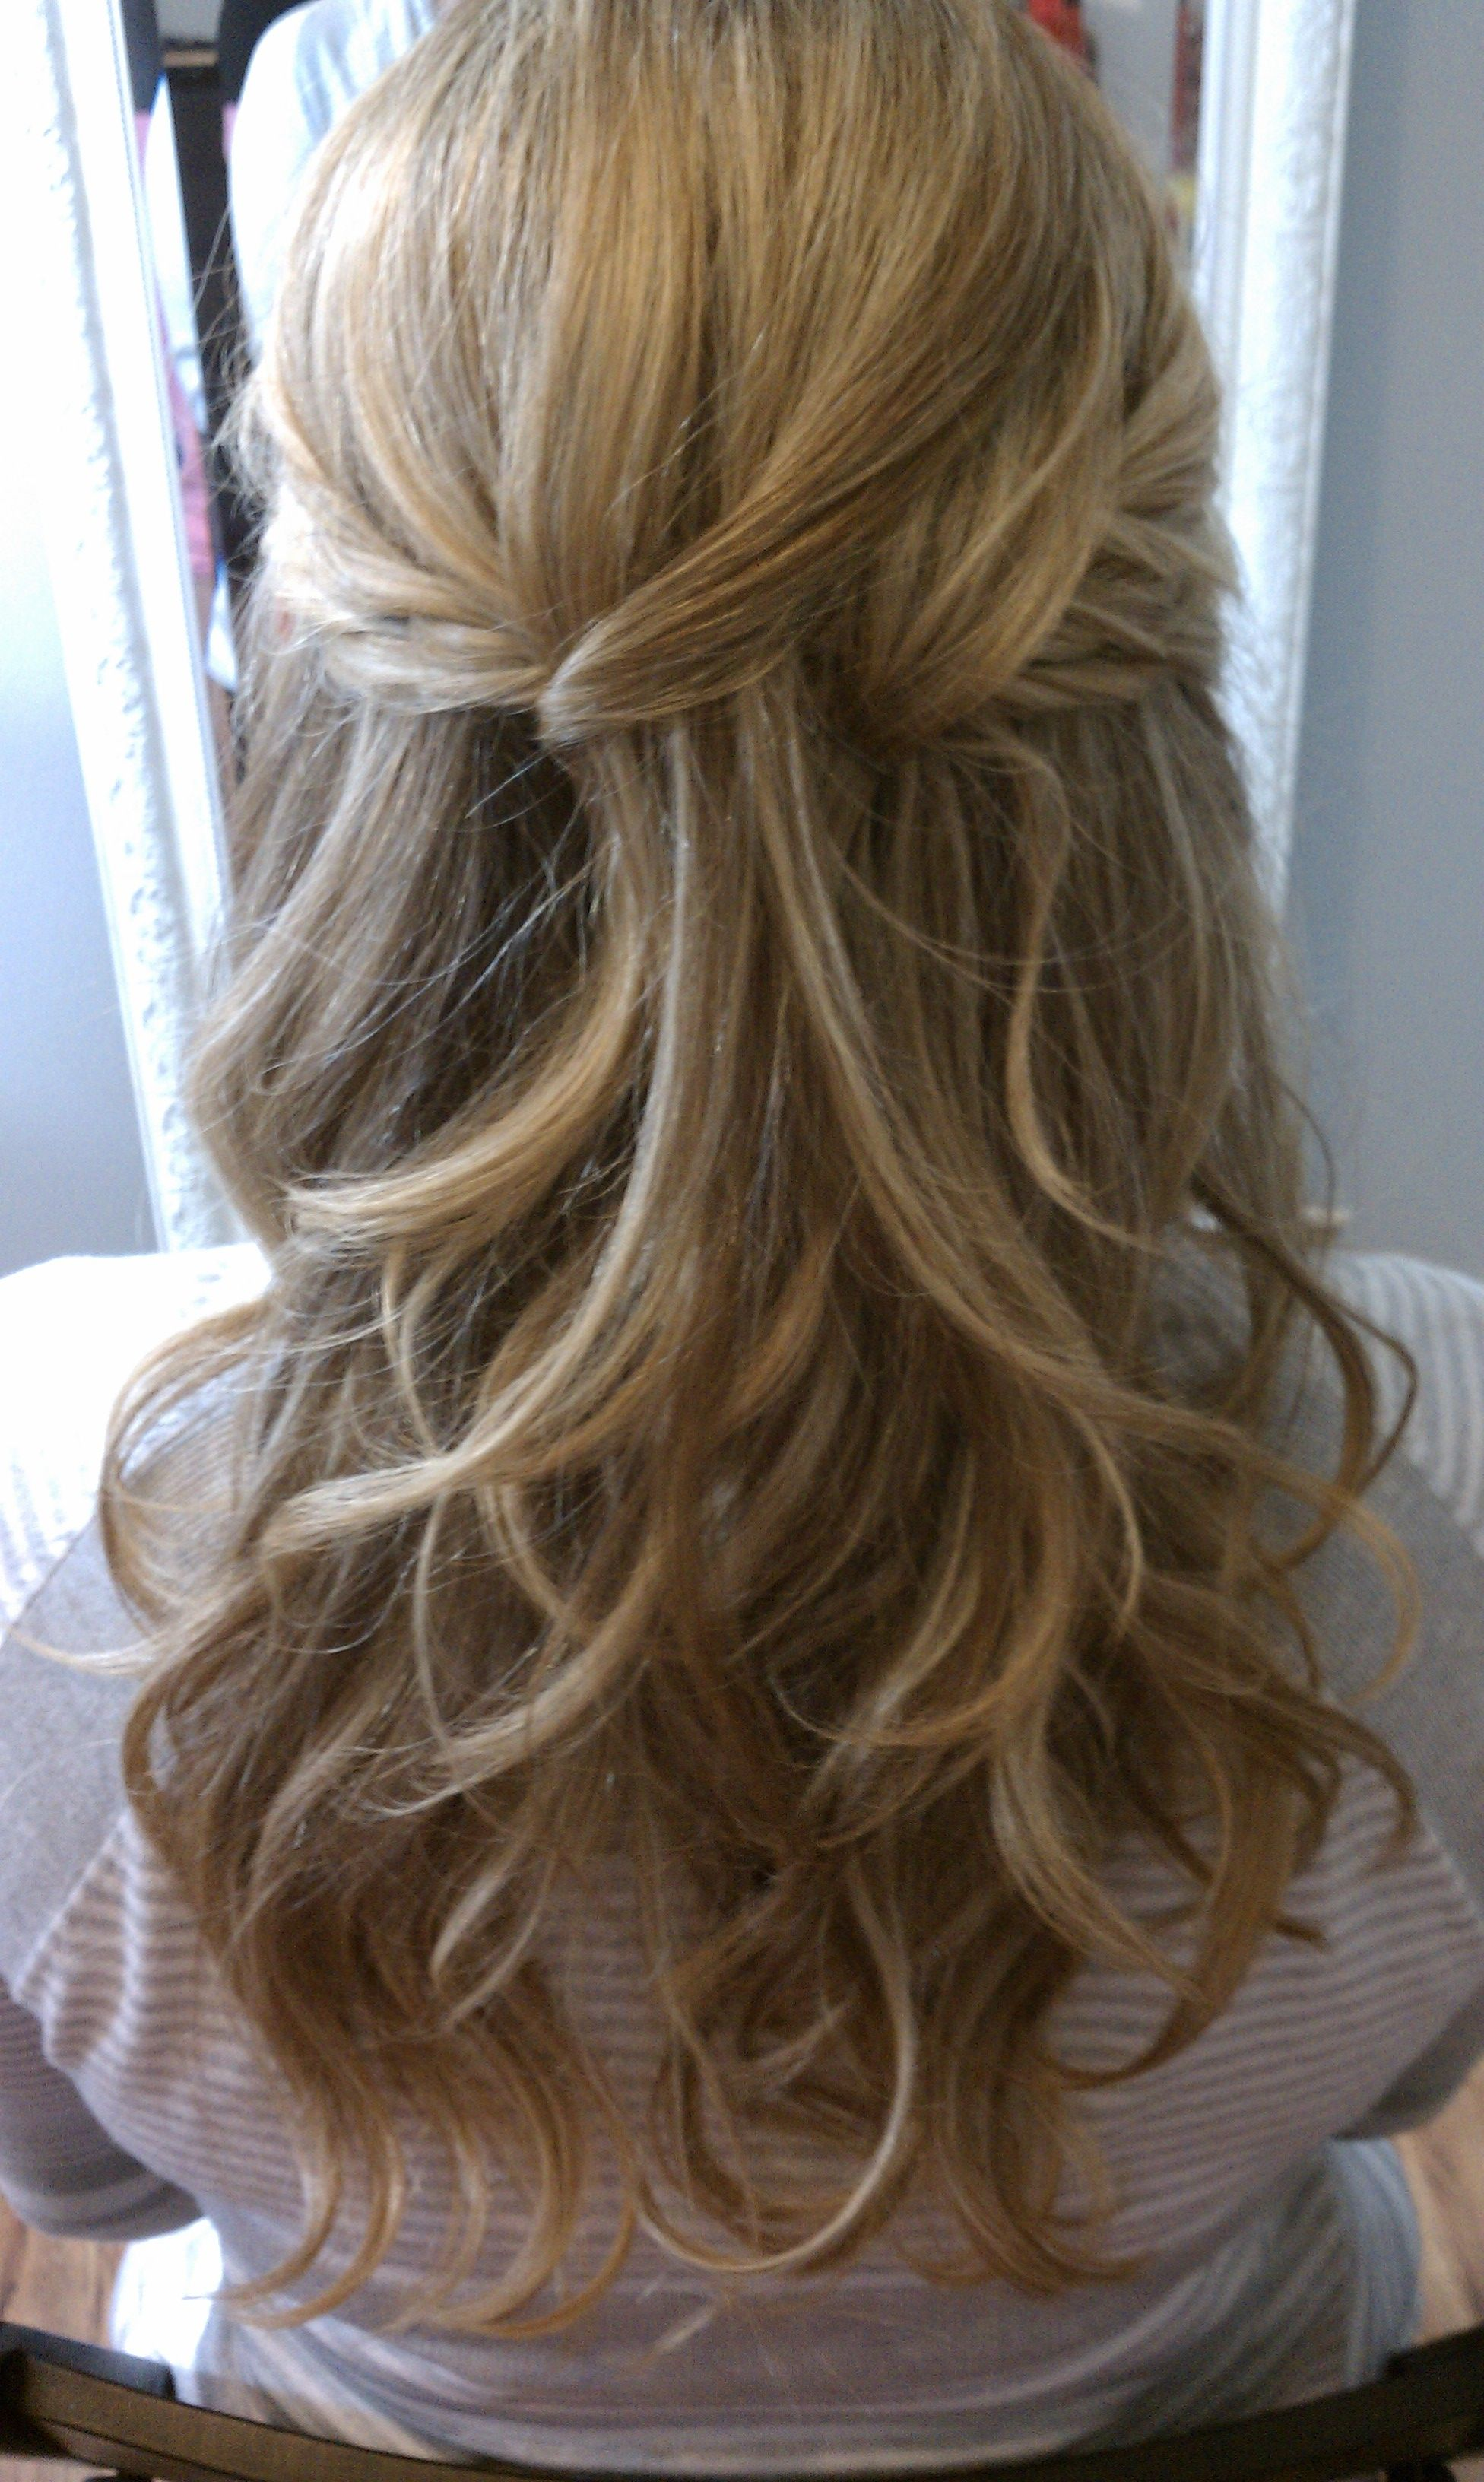 bridal hair half up half down. very close to what i want to